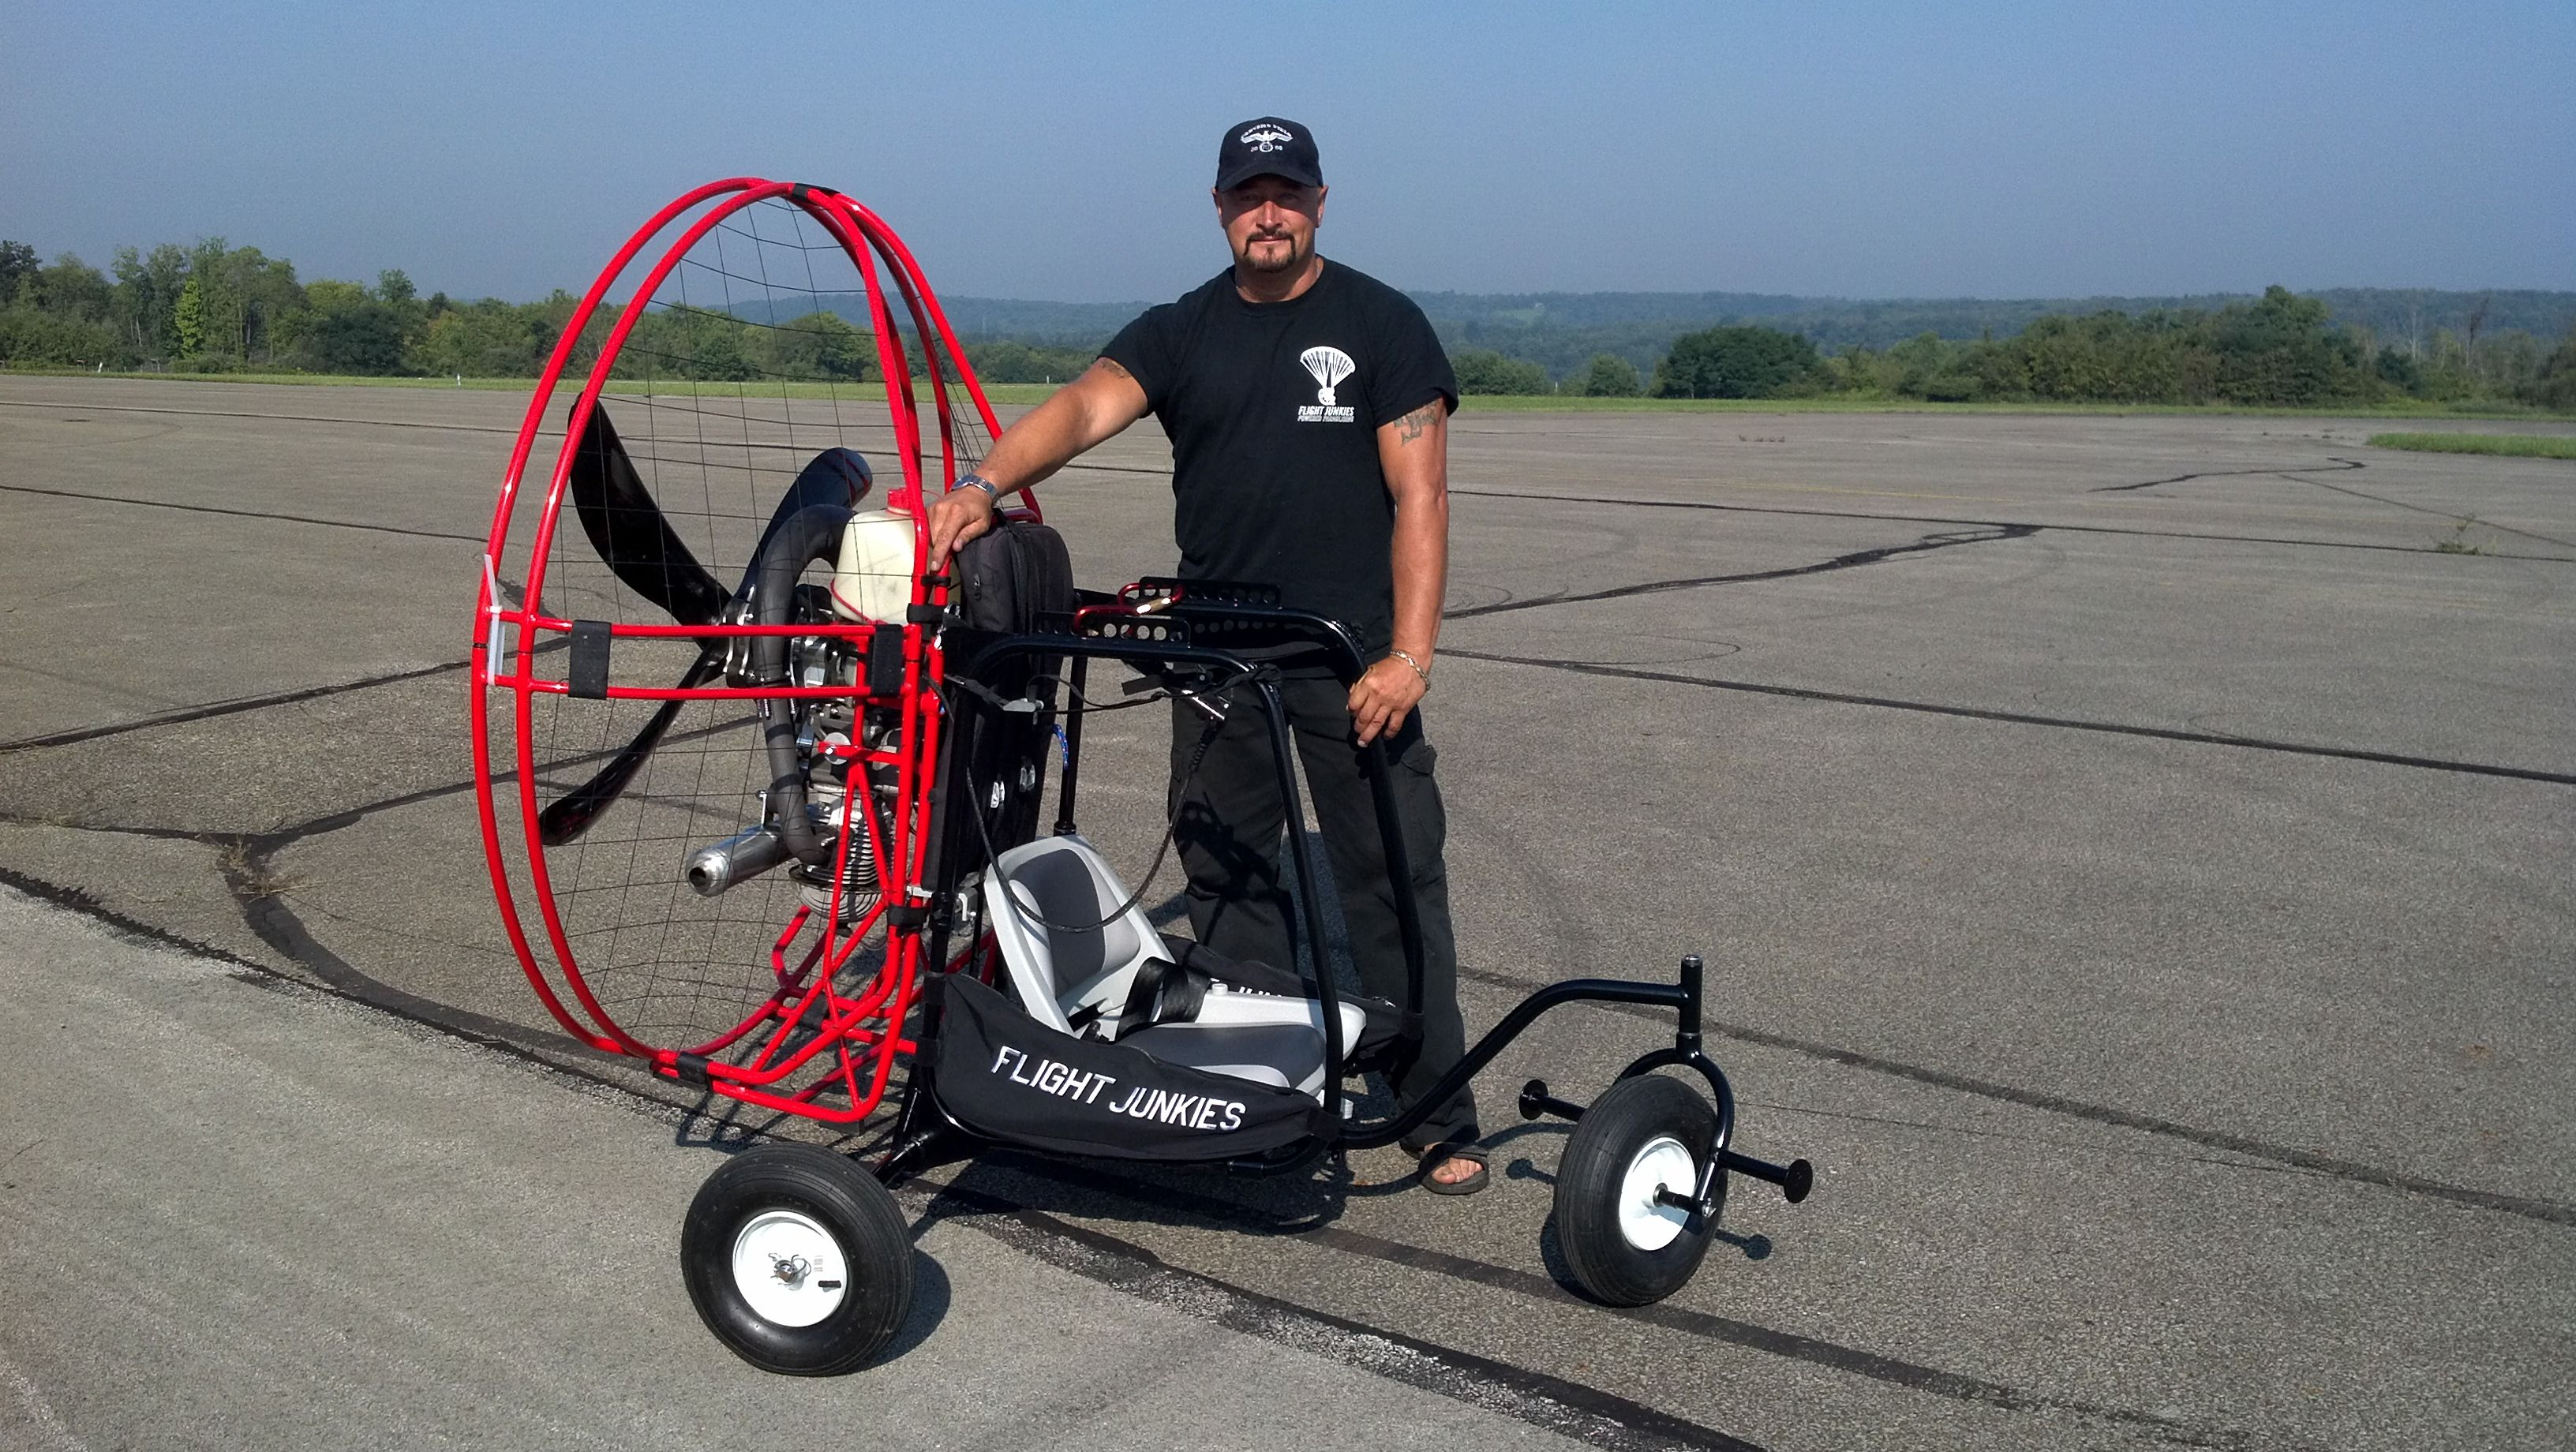 Pin by Dale Retallick on Paramotor   Aircraft, Airplane for